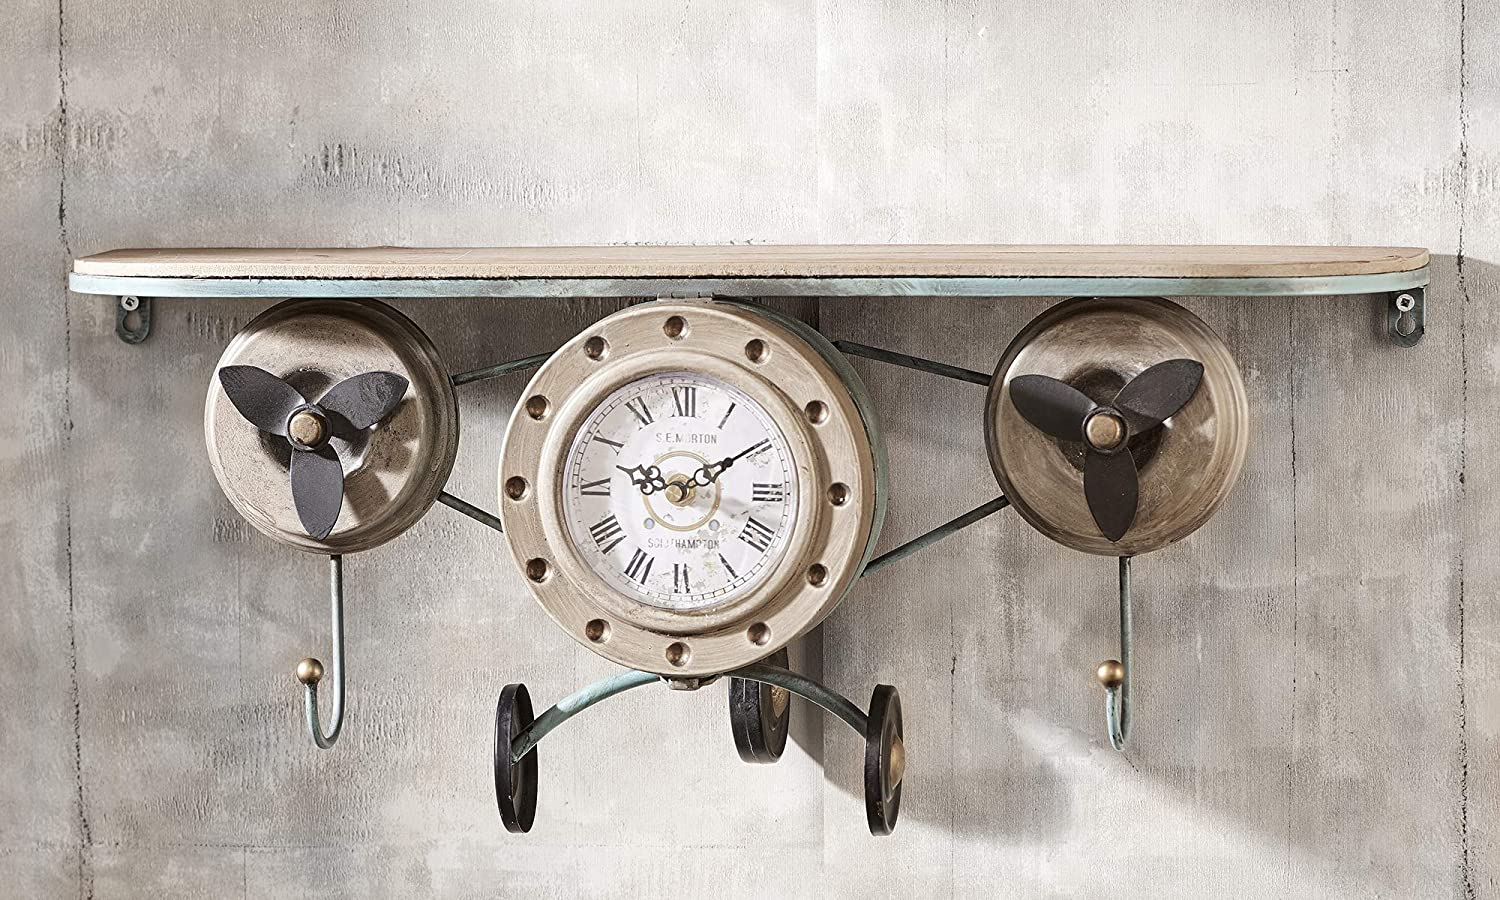 Gift Craft Vintage Airplane Antique gold Tone 23 x 10 Iron and Wood Wall Art Clock Shelf